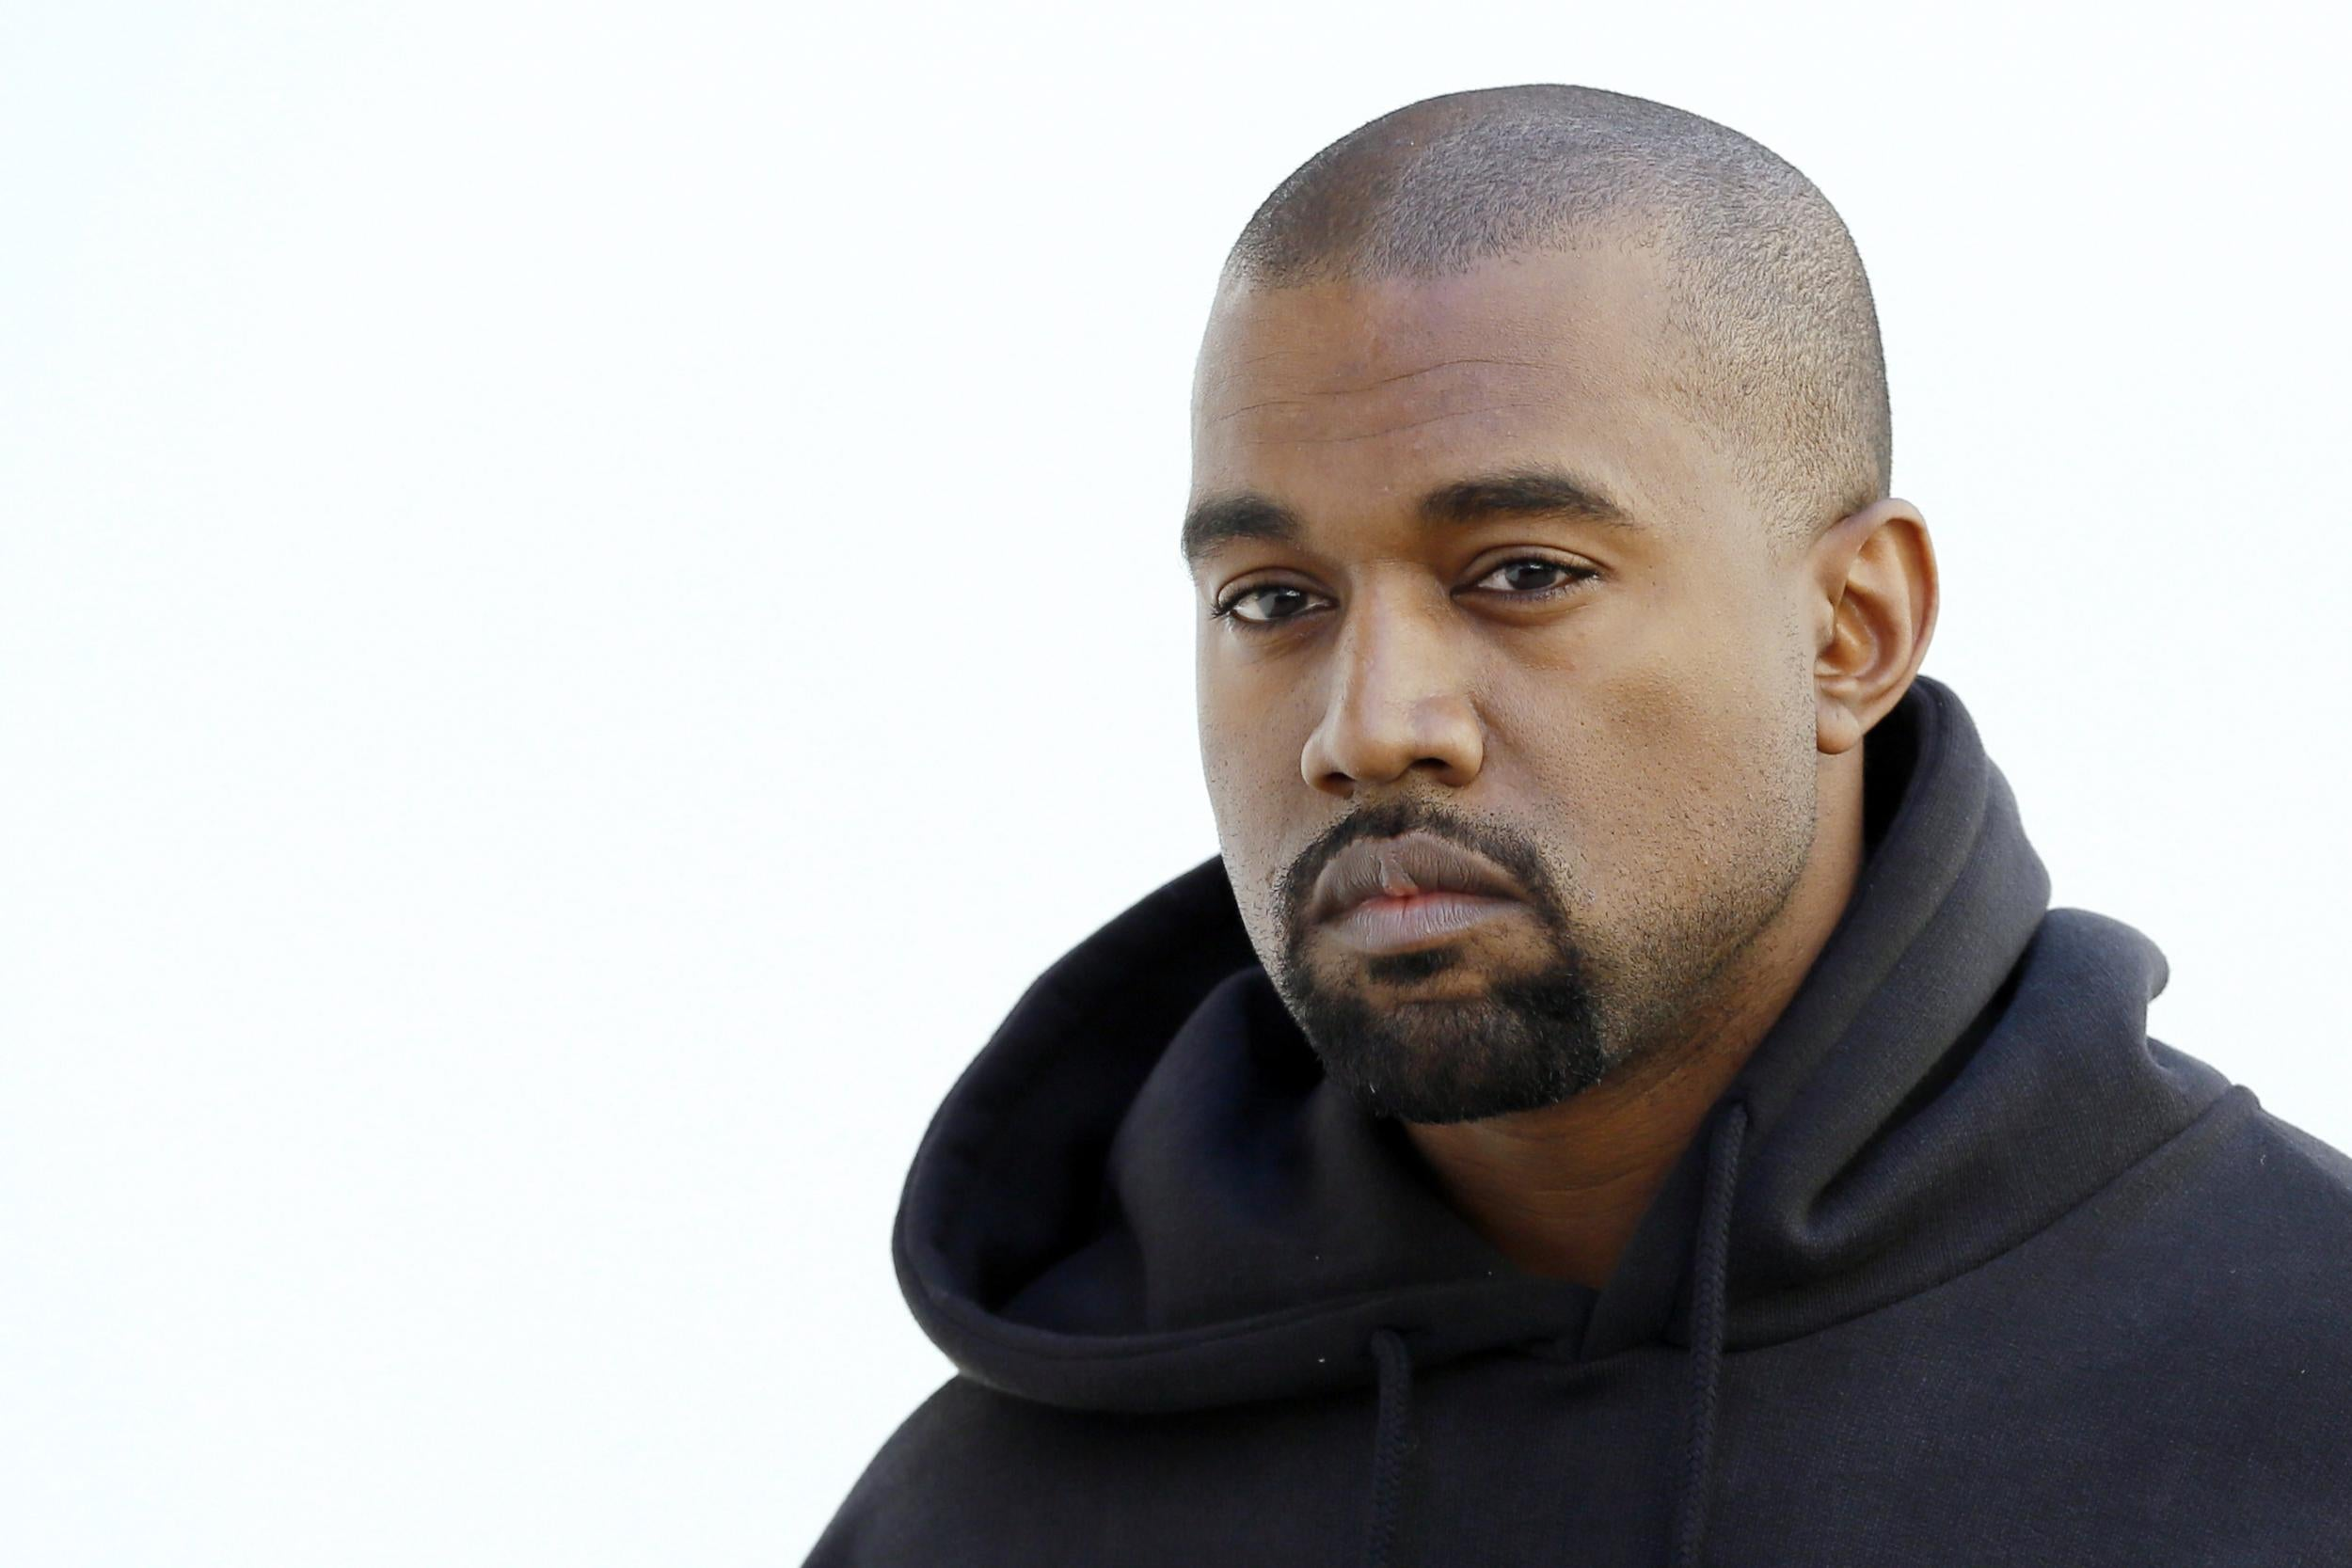 Kanye West says the term 'crazy' will not be used as 'loosely in fut…